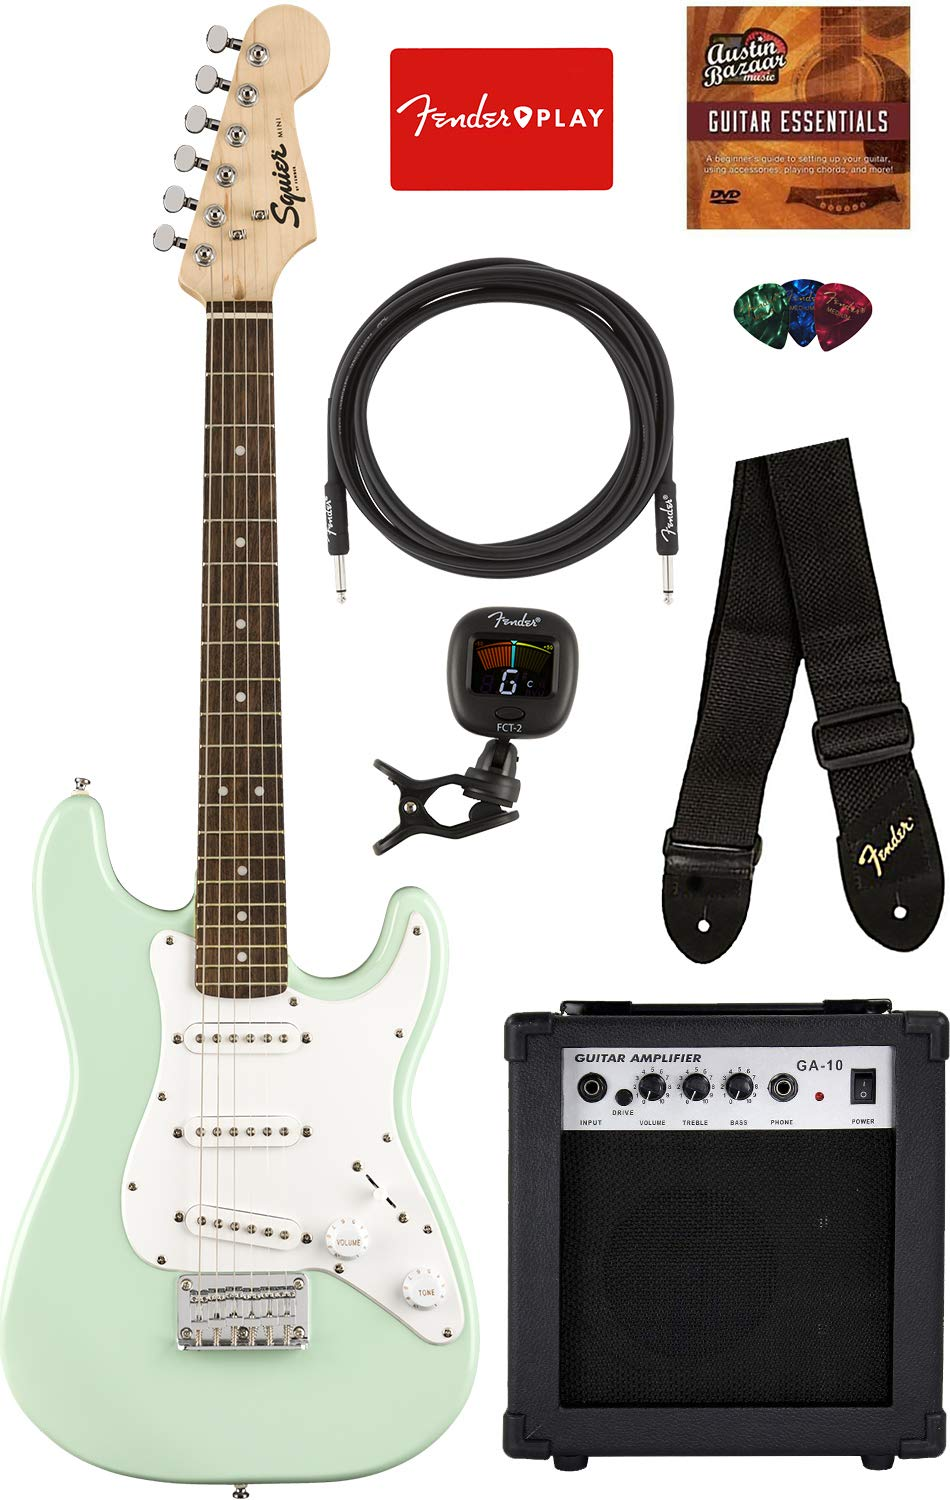 Squier by Fender Mini Strat Electric Guitar - Surf Green Bundle with Amplifier, Instrument Cable, Tuner, Strap, Picks, Fender Play Online Lessons, and Austin Bazaar Instructional DVD by Austin Bazaar